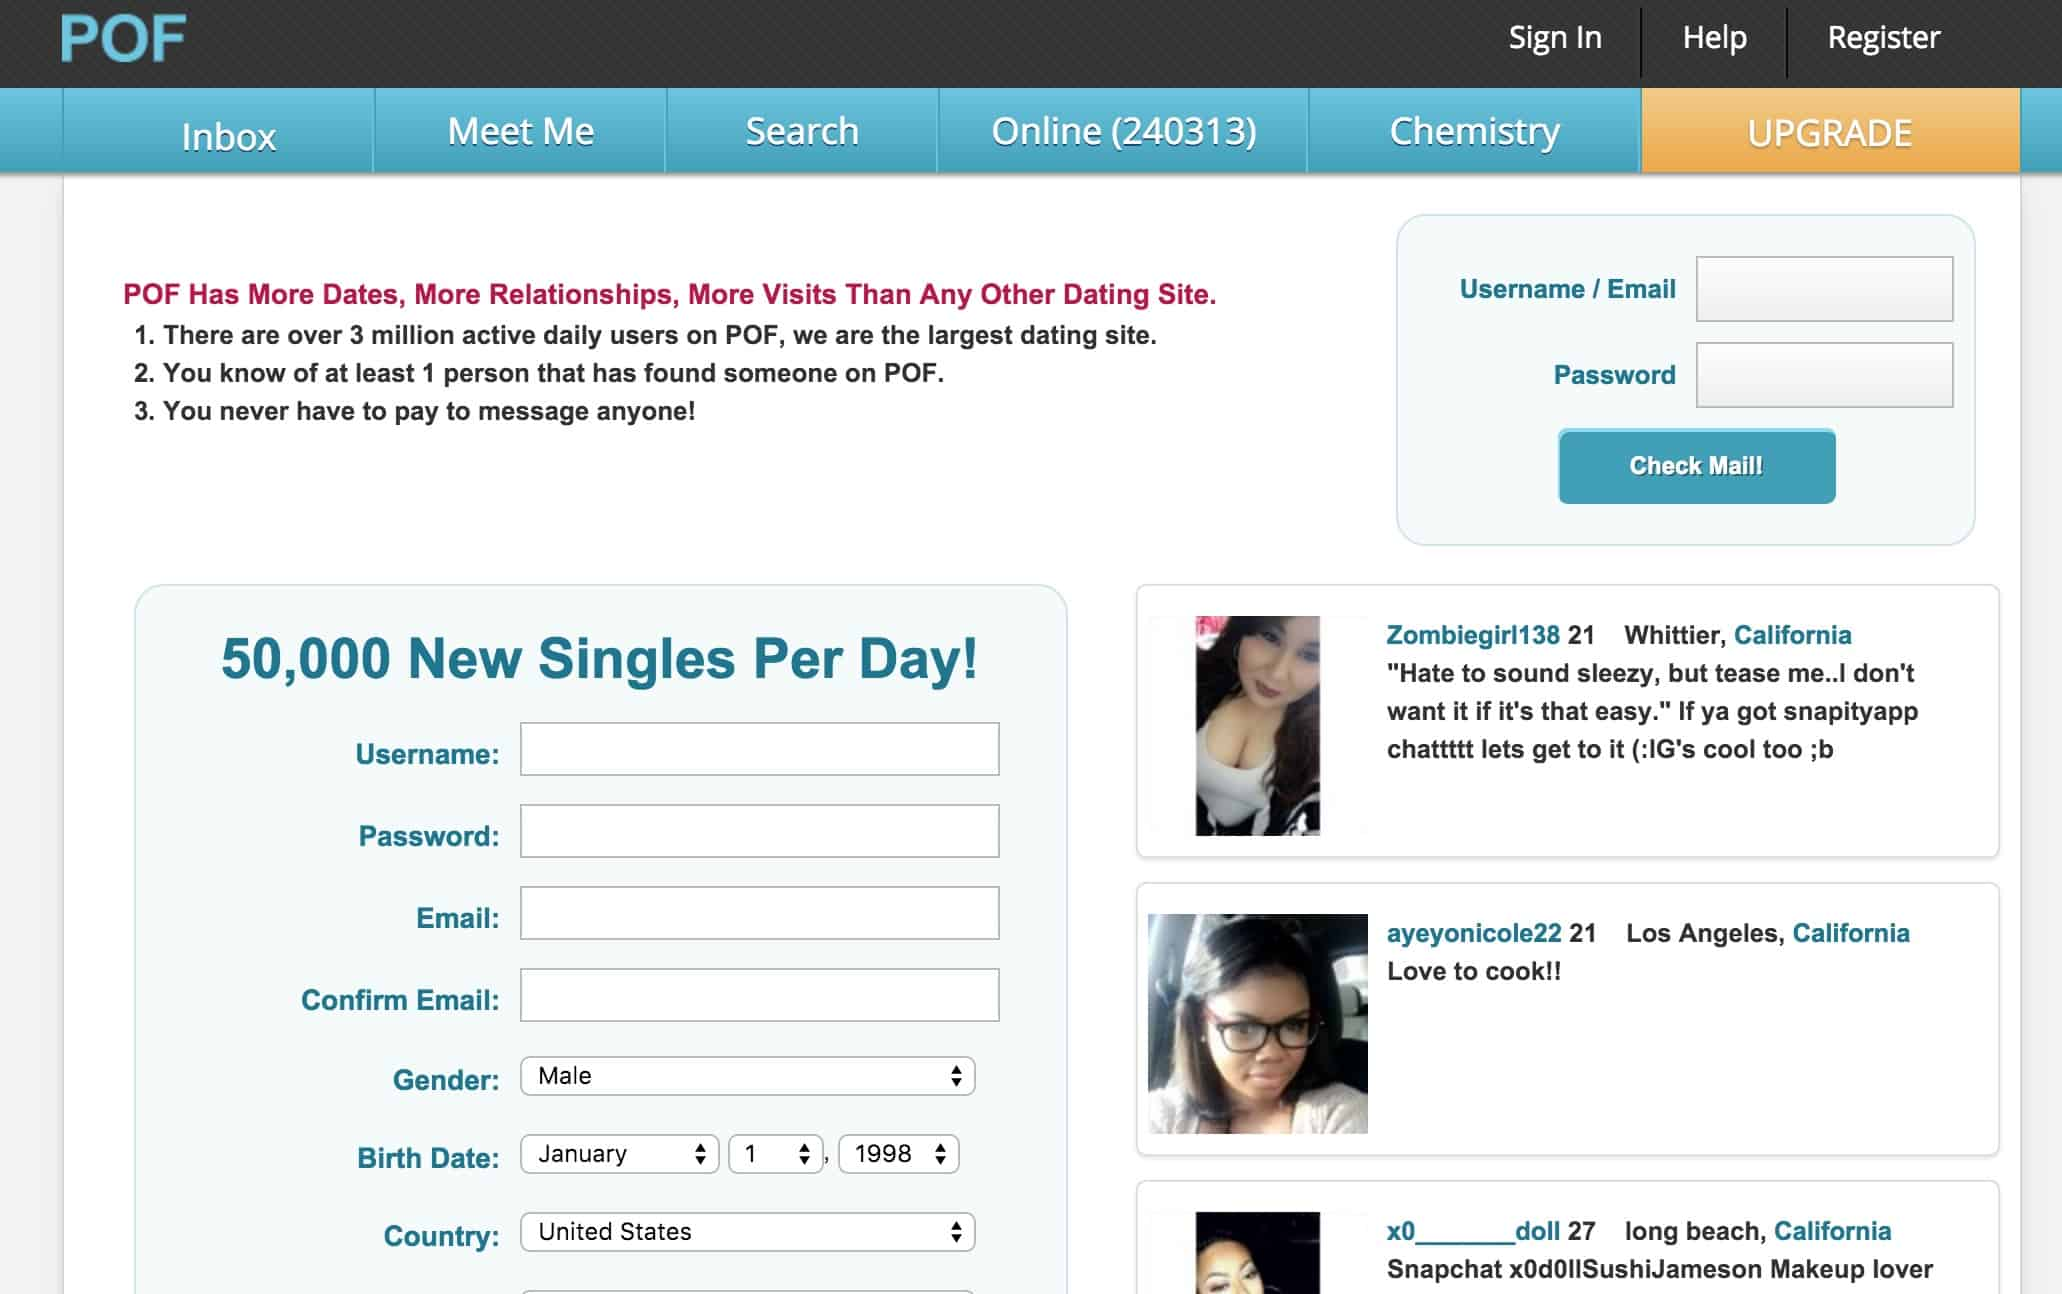 Free dating site pof